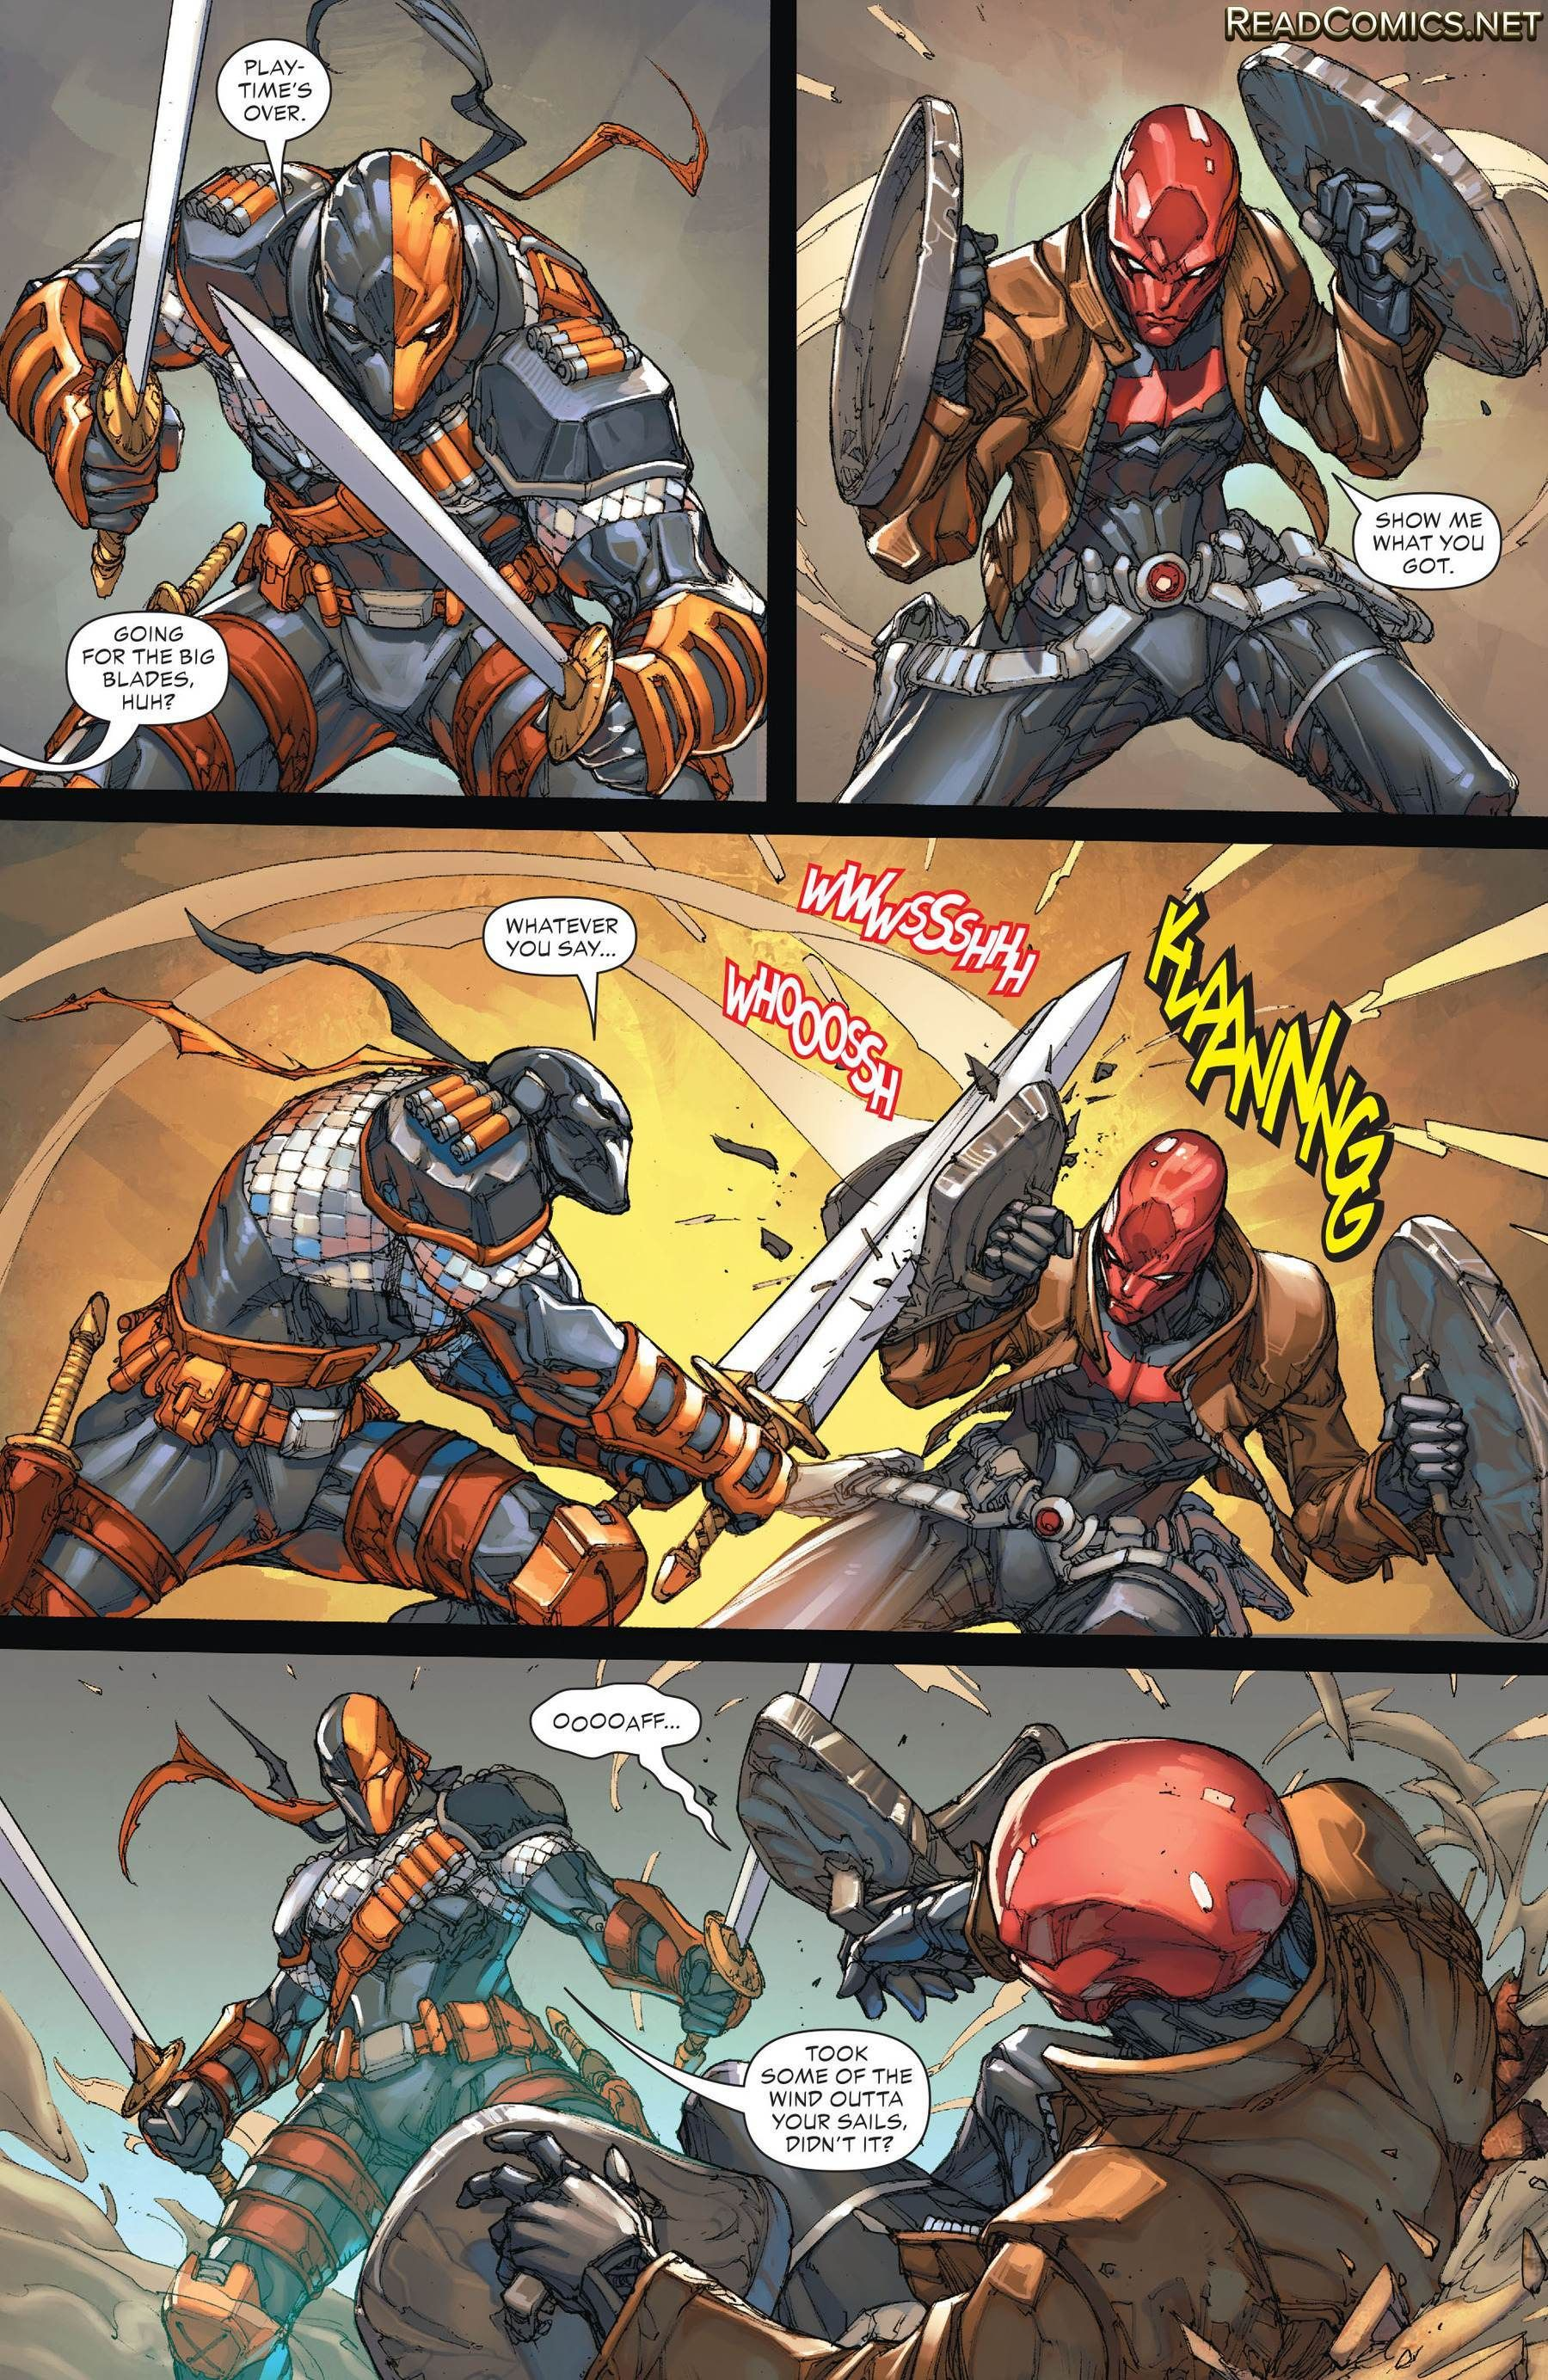 Deathstroke #16 (the New 52) Deathstroke vs Red Hood part 6 - Visit to grab an amazing super hero shirt now on sale!